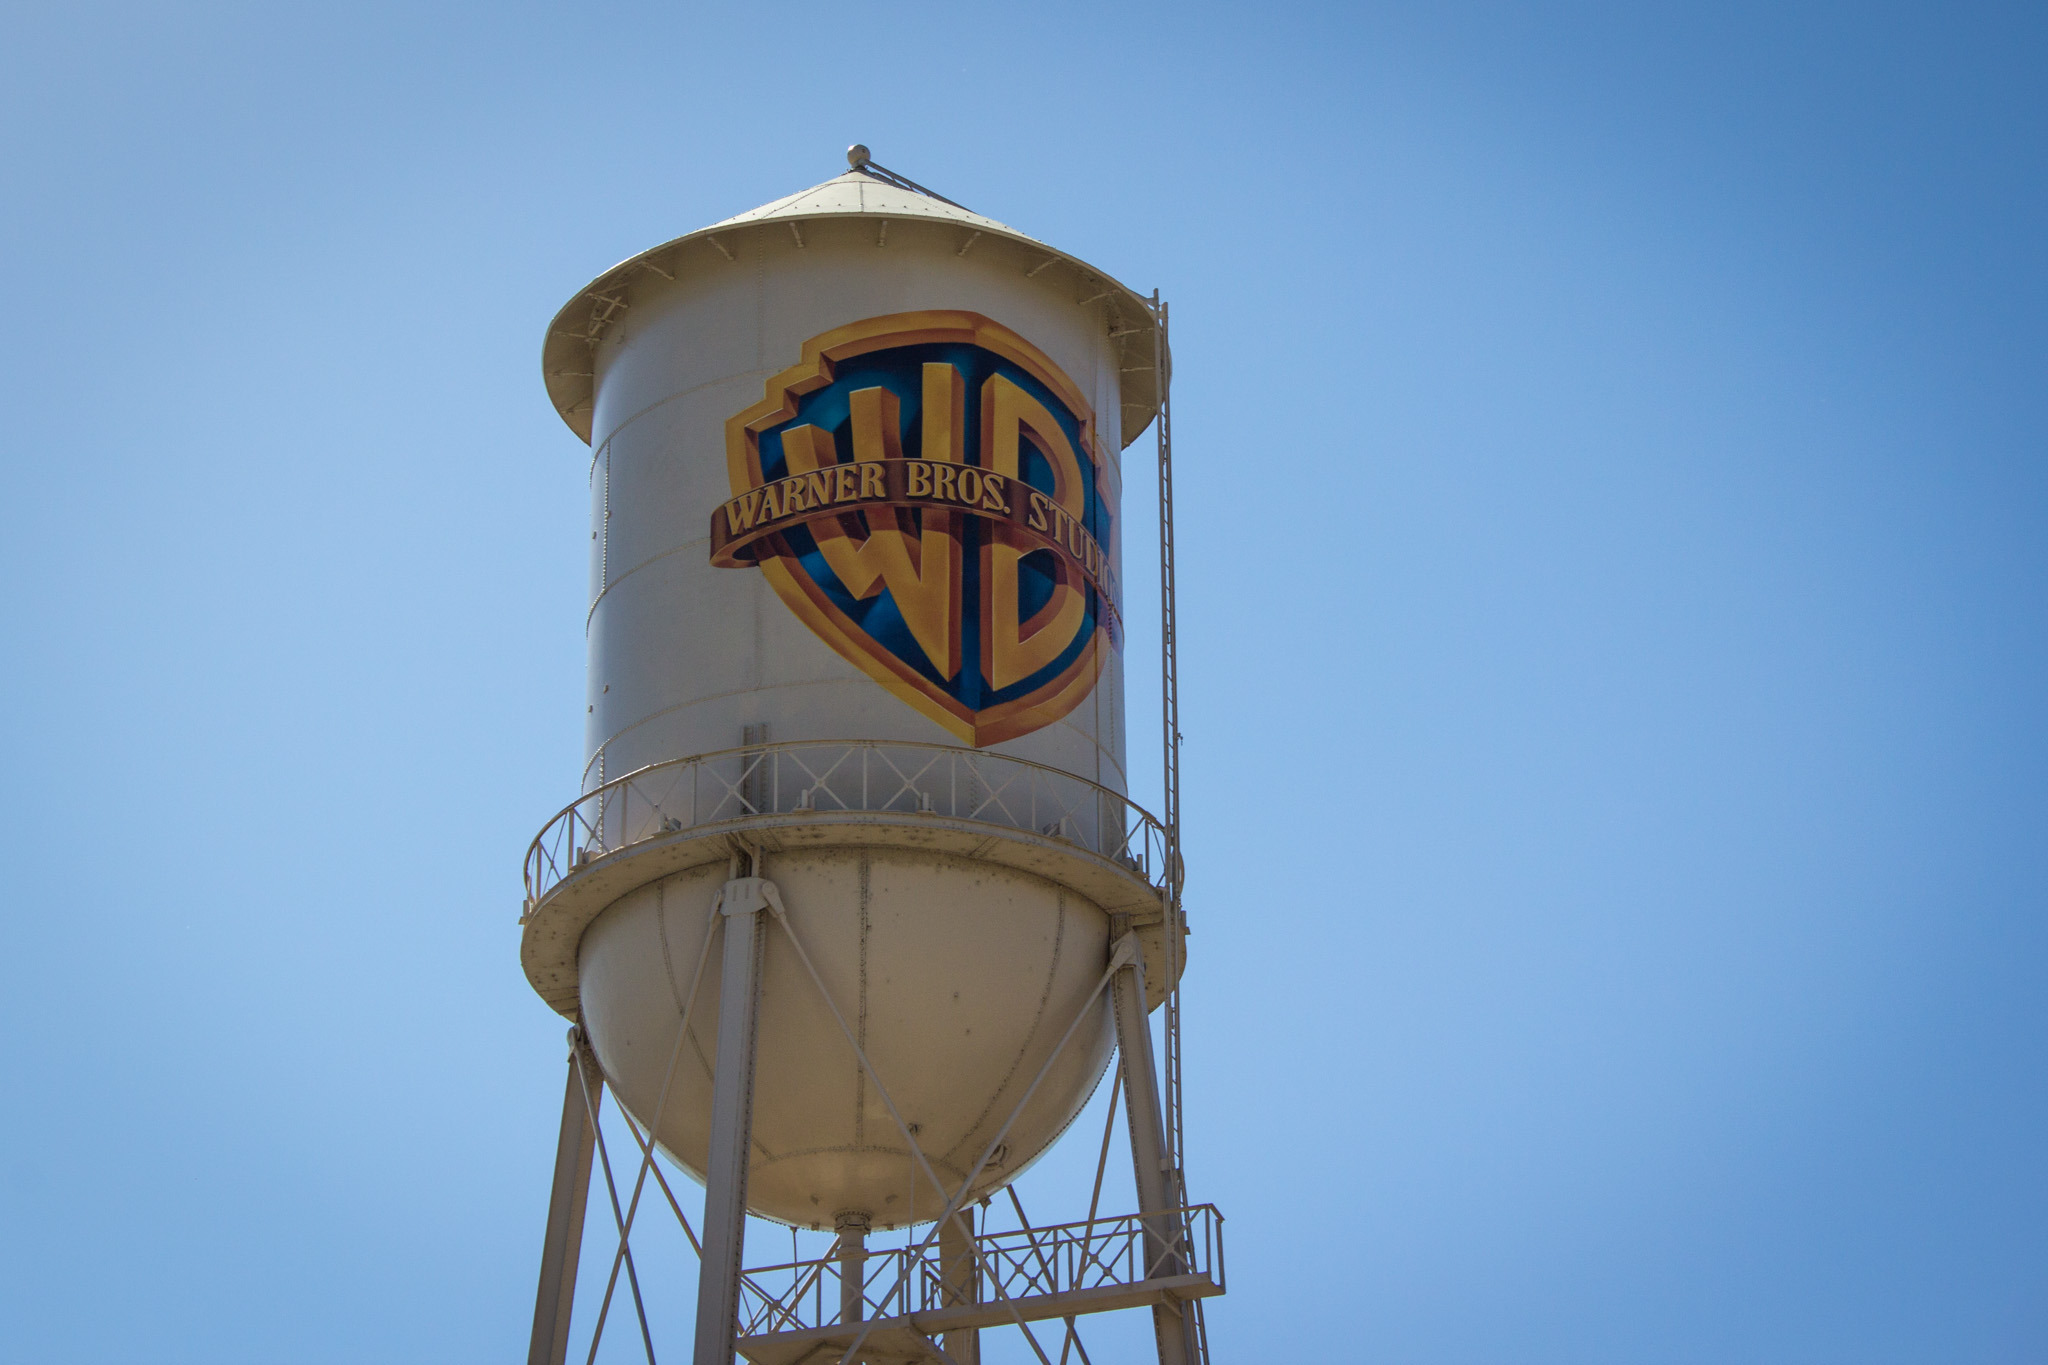 A guide to the Warner Bros. Studio Tour Hollywood